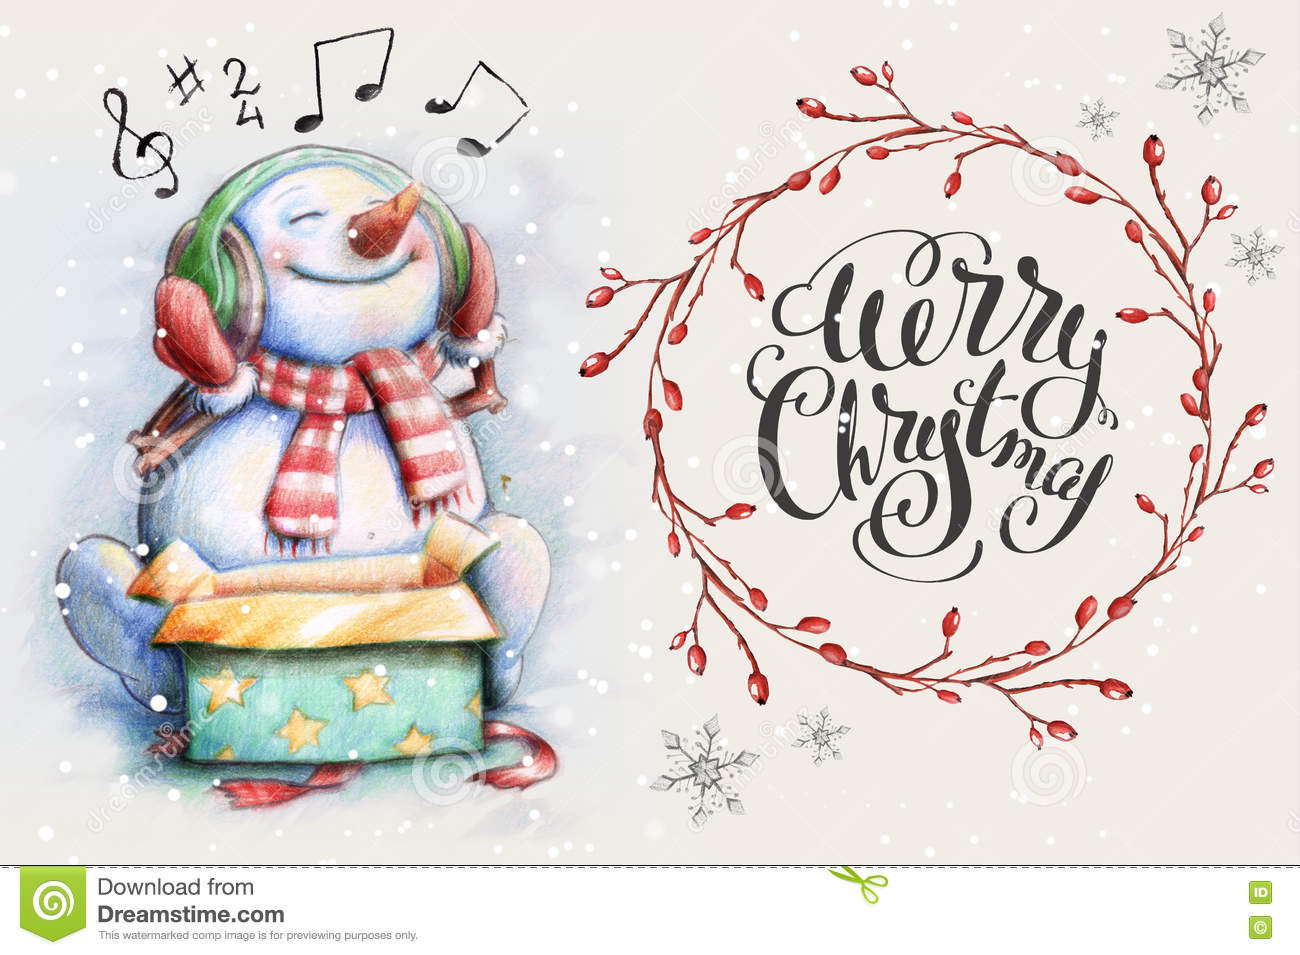 Snowman listening christmas song stock illustration illustration snowman listening christmas song watercolor illustration for greeting card m4hsunfo